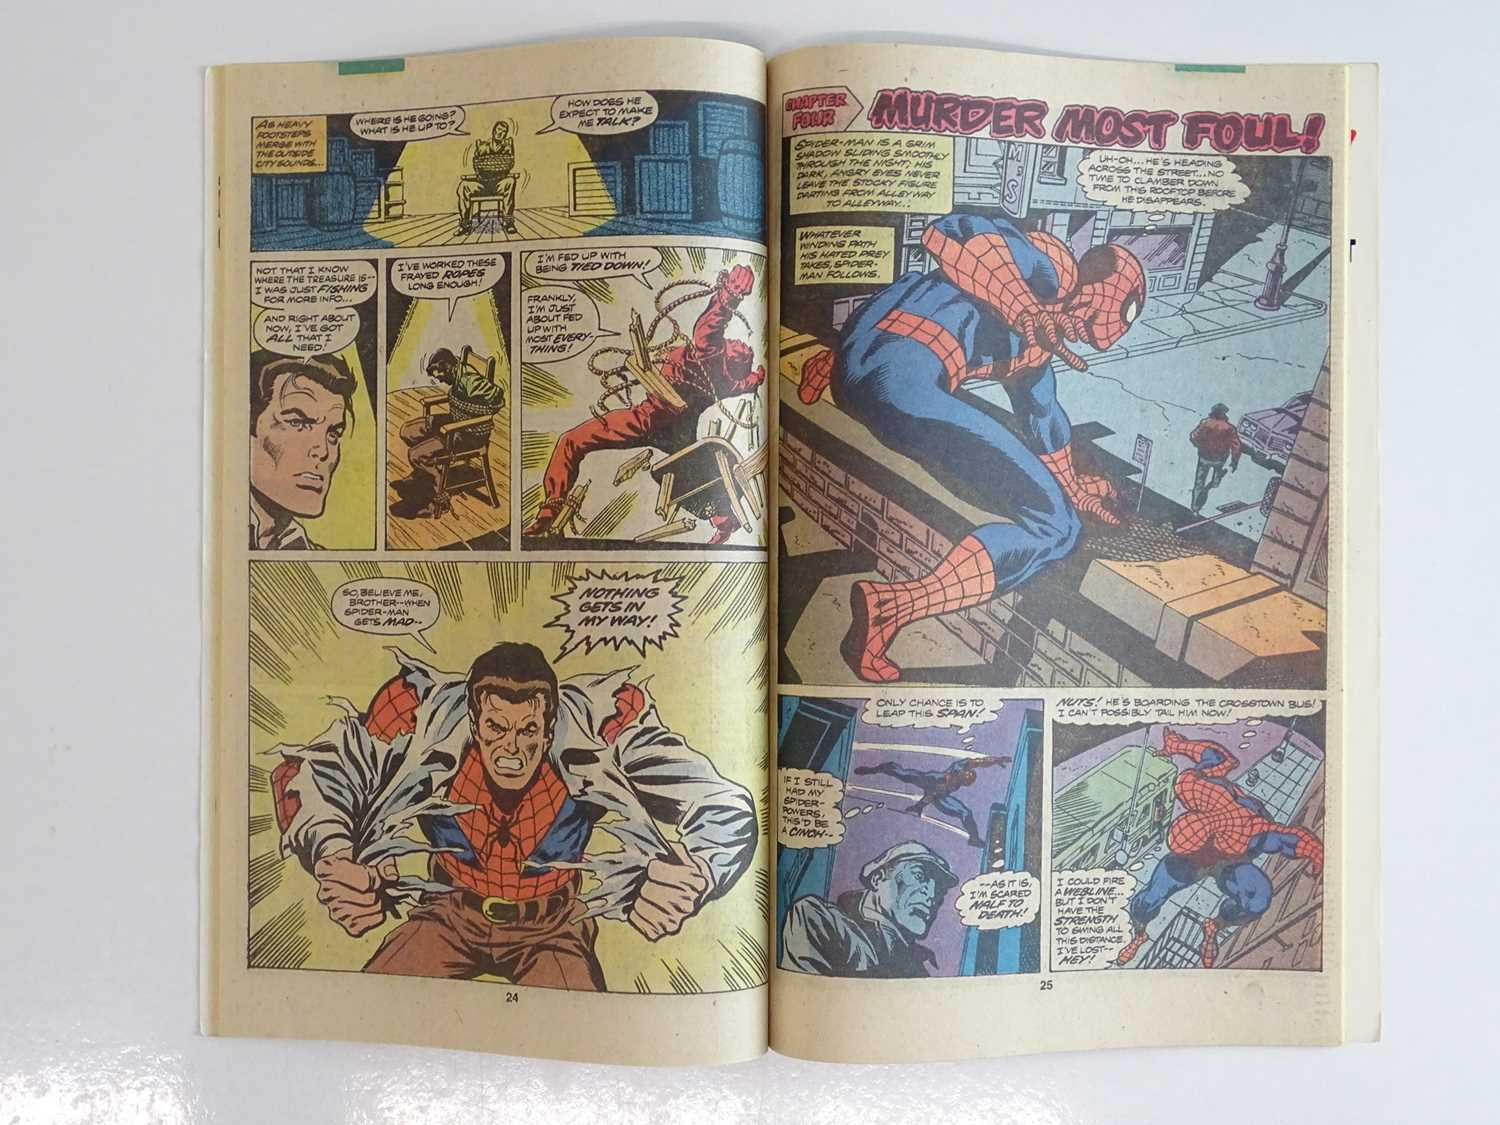 AMAZING SPIDER-MAN #200 - (1980 - MARVEL) - Spider-Man's origin is retold and he confronts the - Image 7 of 9